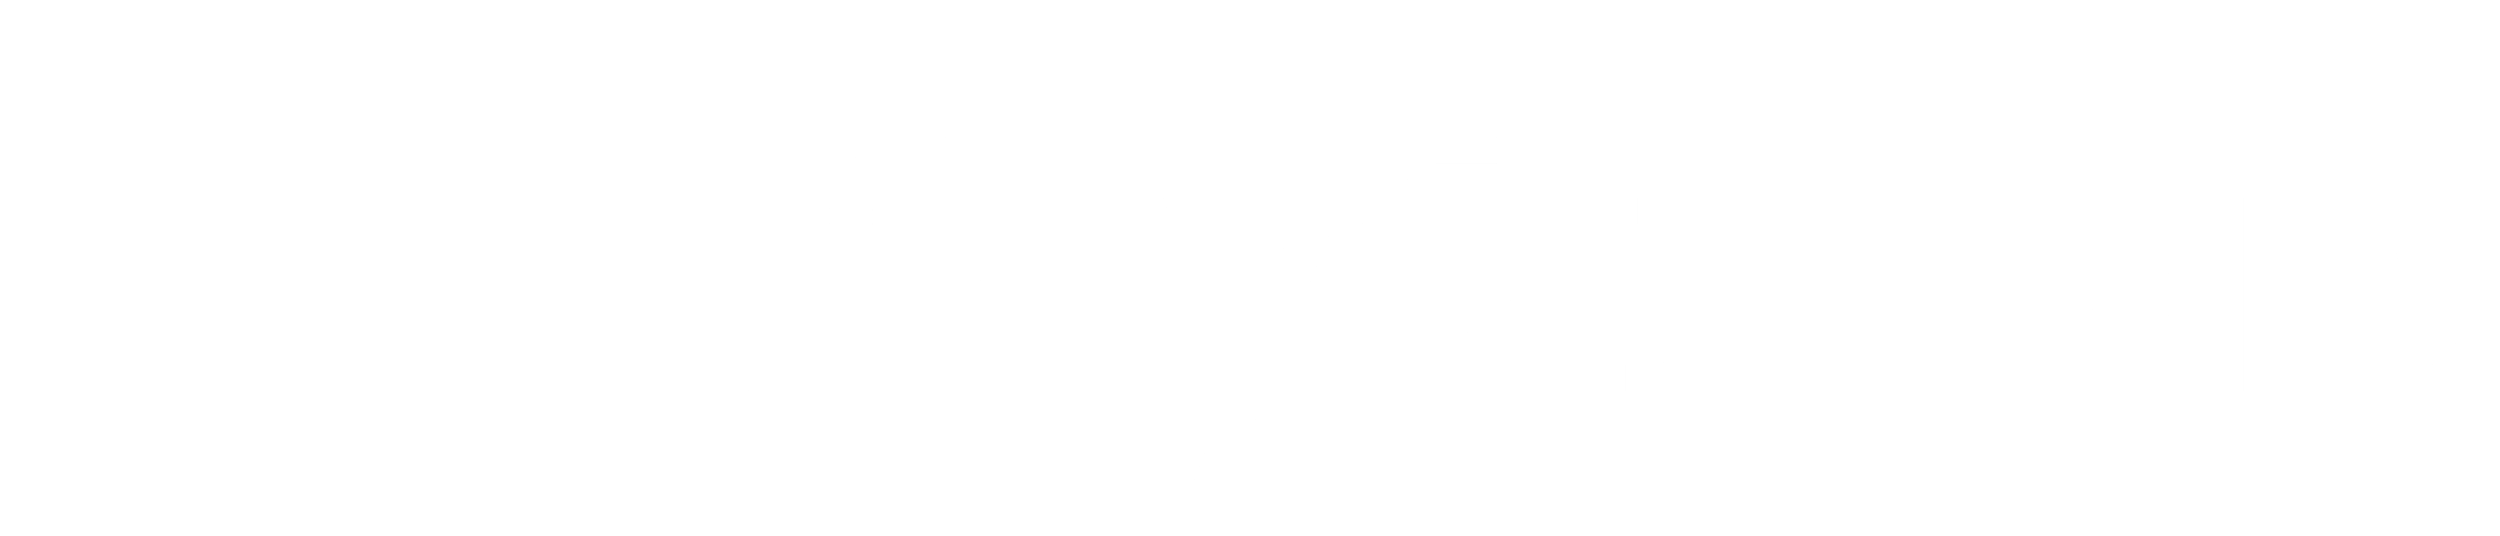 PlayStation_logo_text_image_picture.png